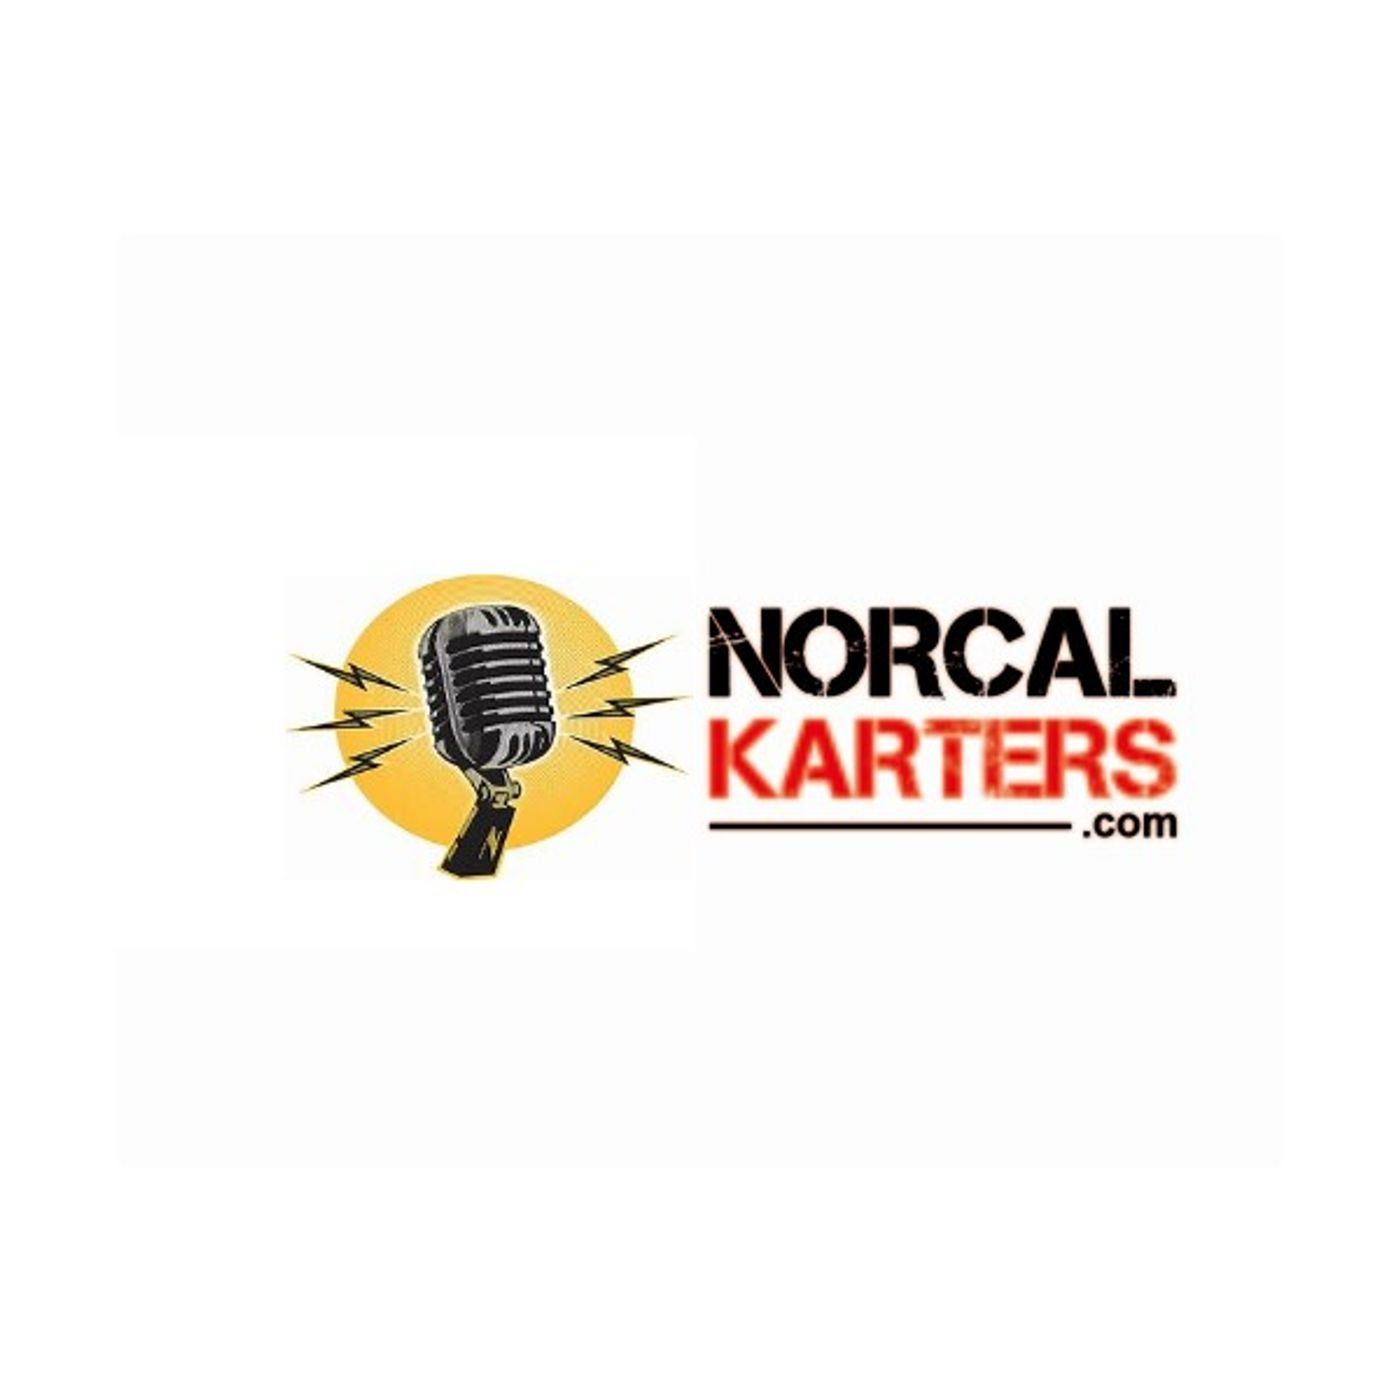 Upcoming Events - Norcal Karters - Week of Sept. 14, 2020